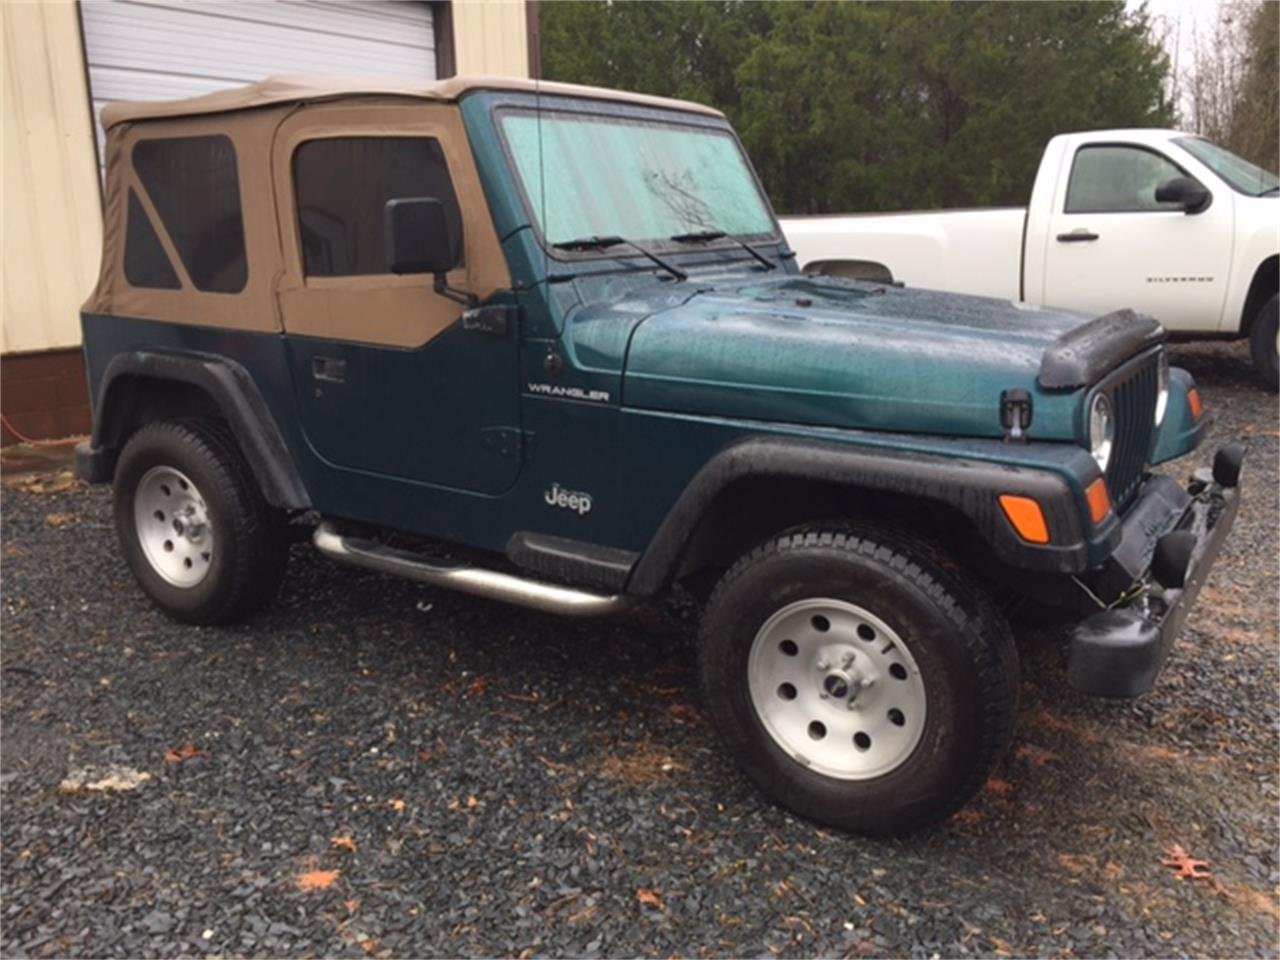 Large Picture of 1997 Wrangler located in MILFORD Ohio Offered by Ultra Automotive - MO1A